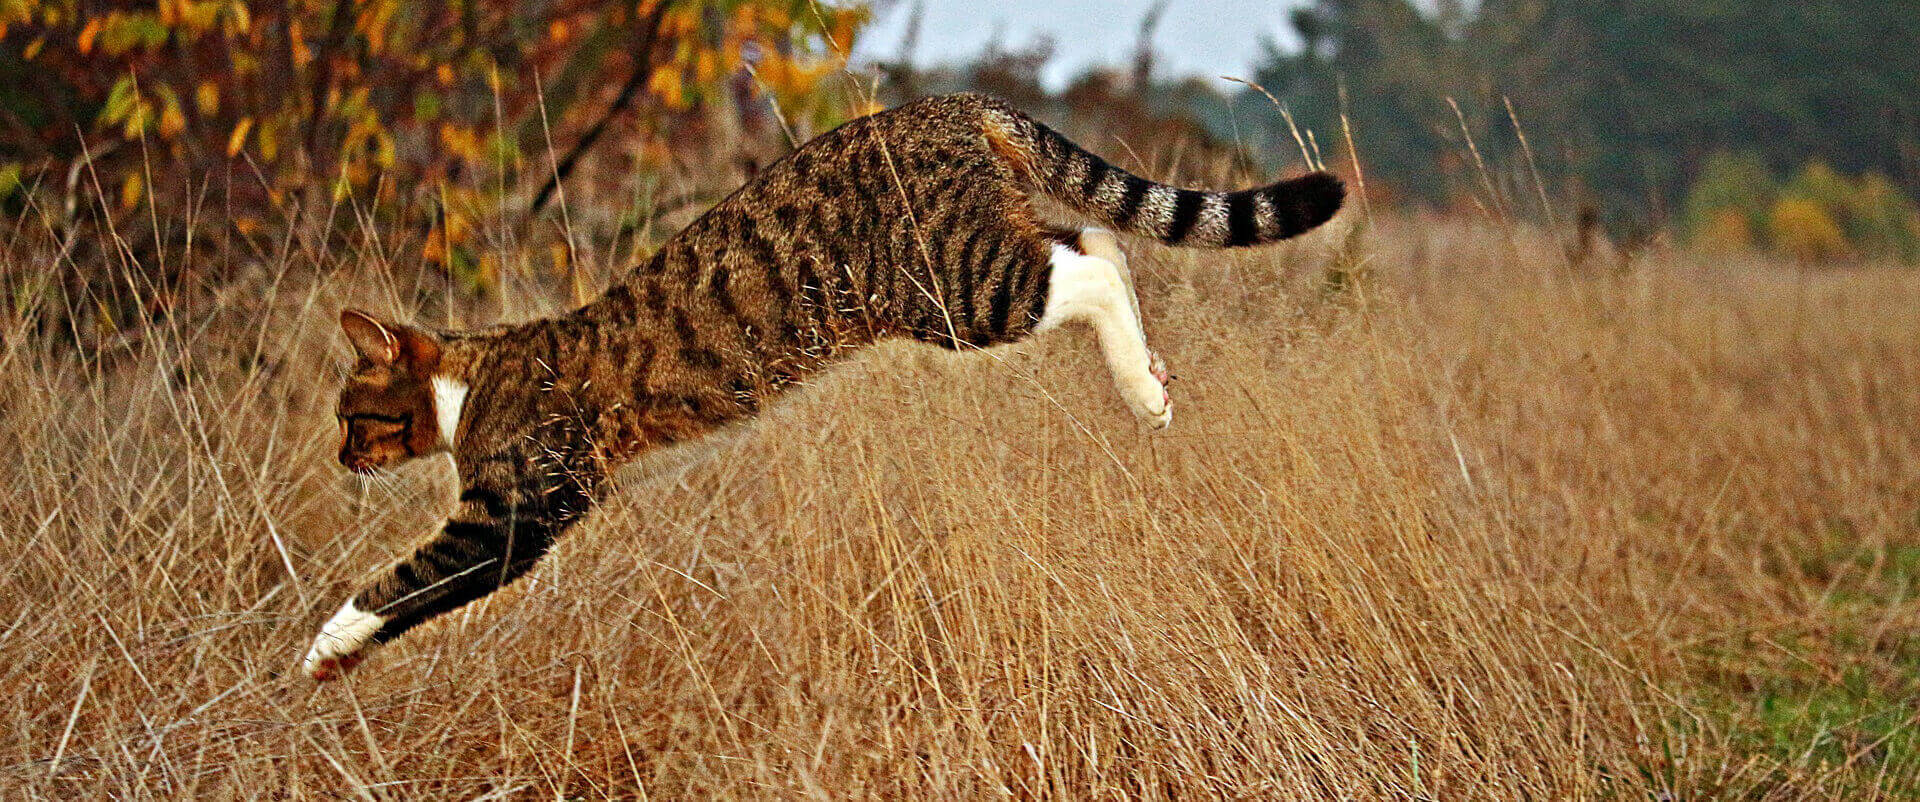 Soft cat landing: Do cats always land on their paws?